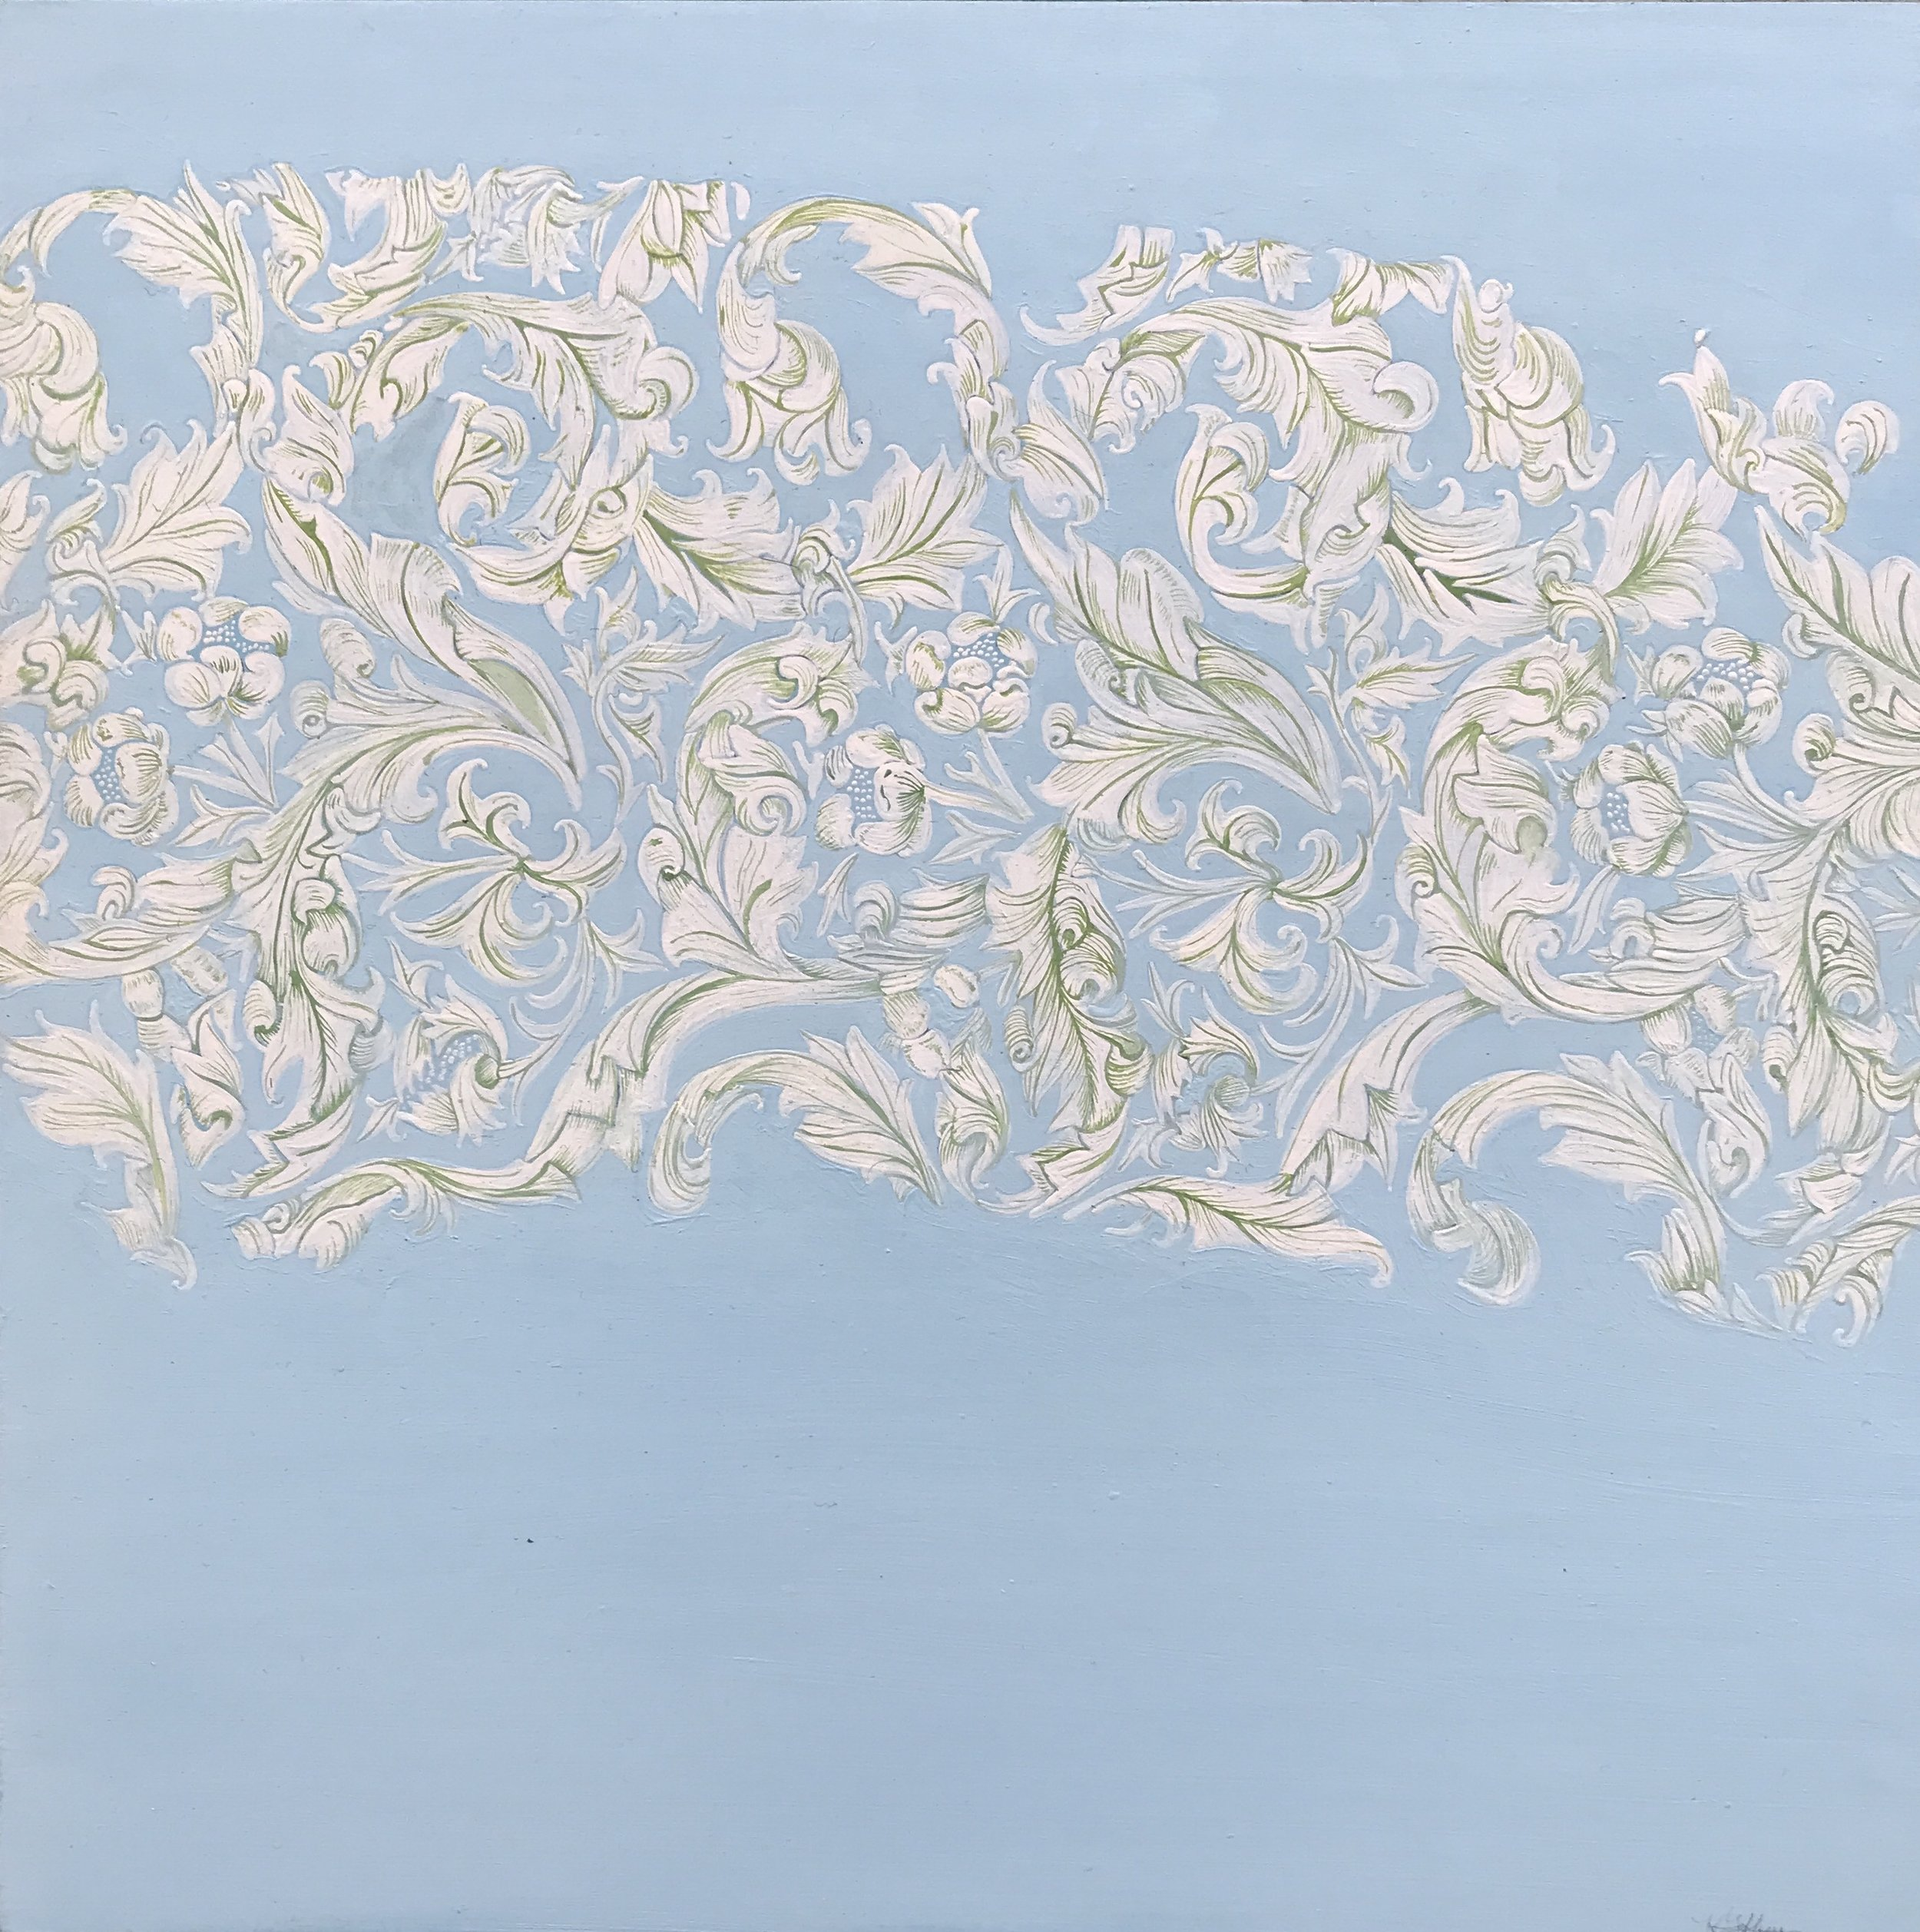 04_Kiki Gaffney_Blue Arch_oil and graphite on wood panels_12x24in.jpg